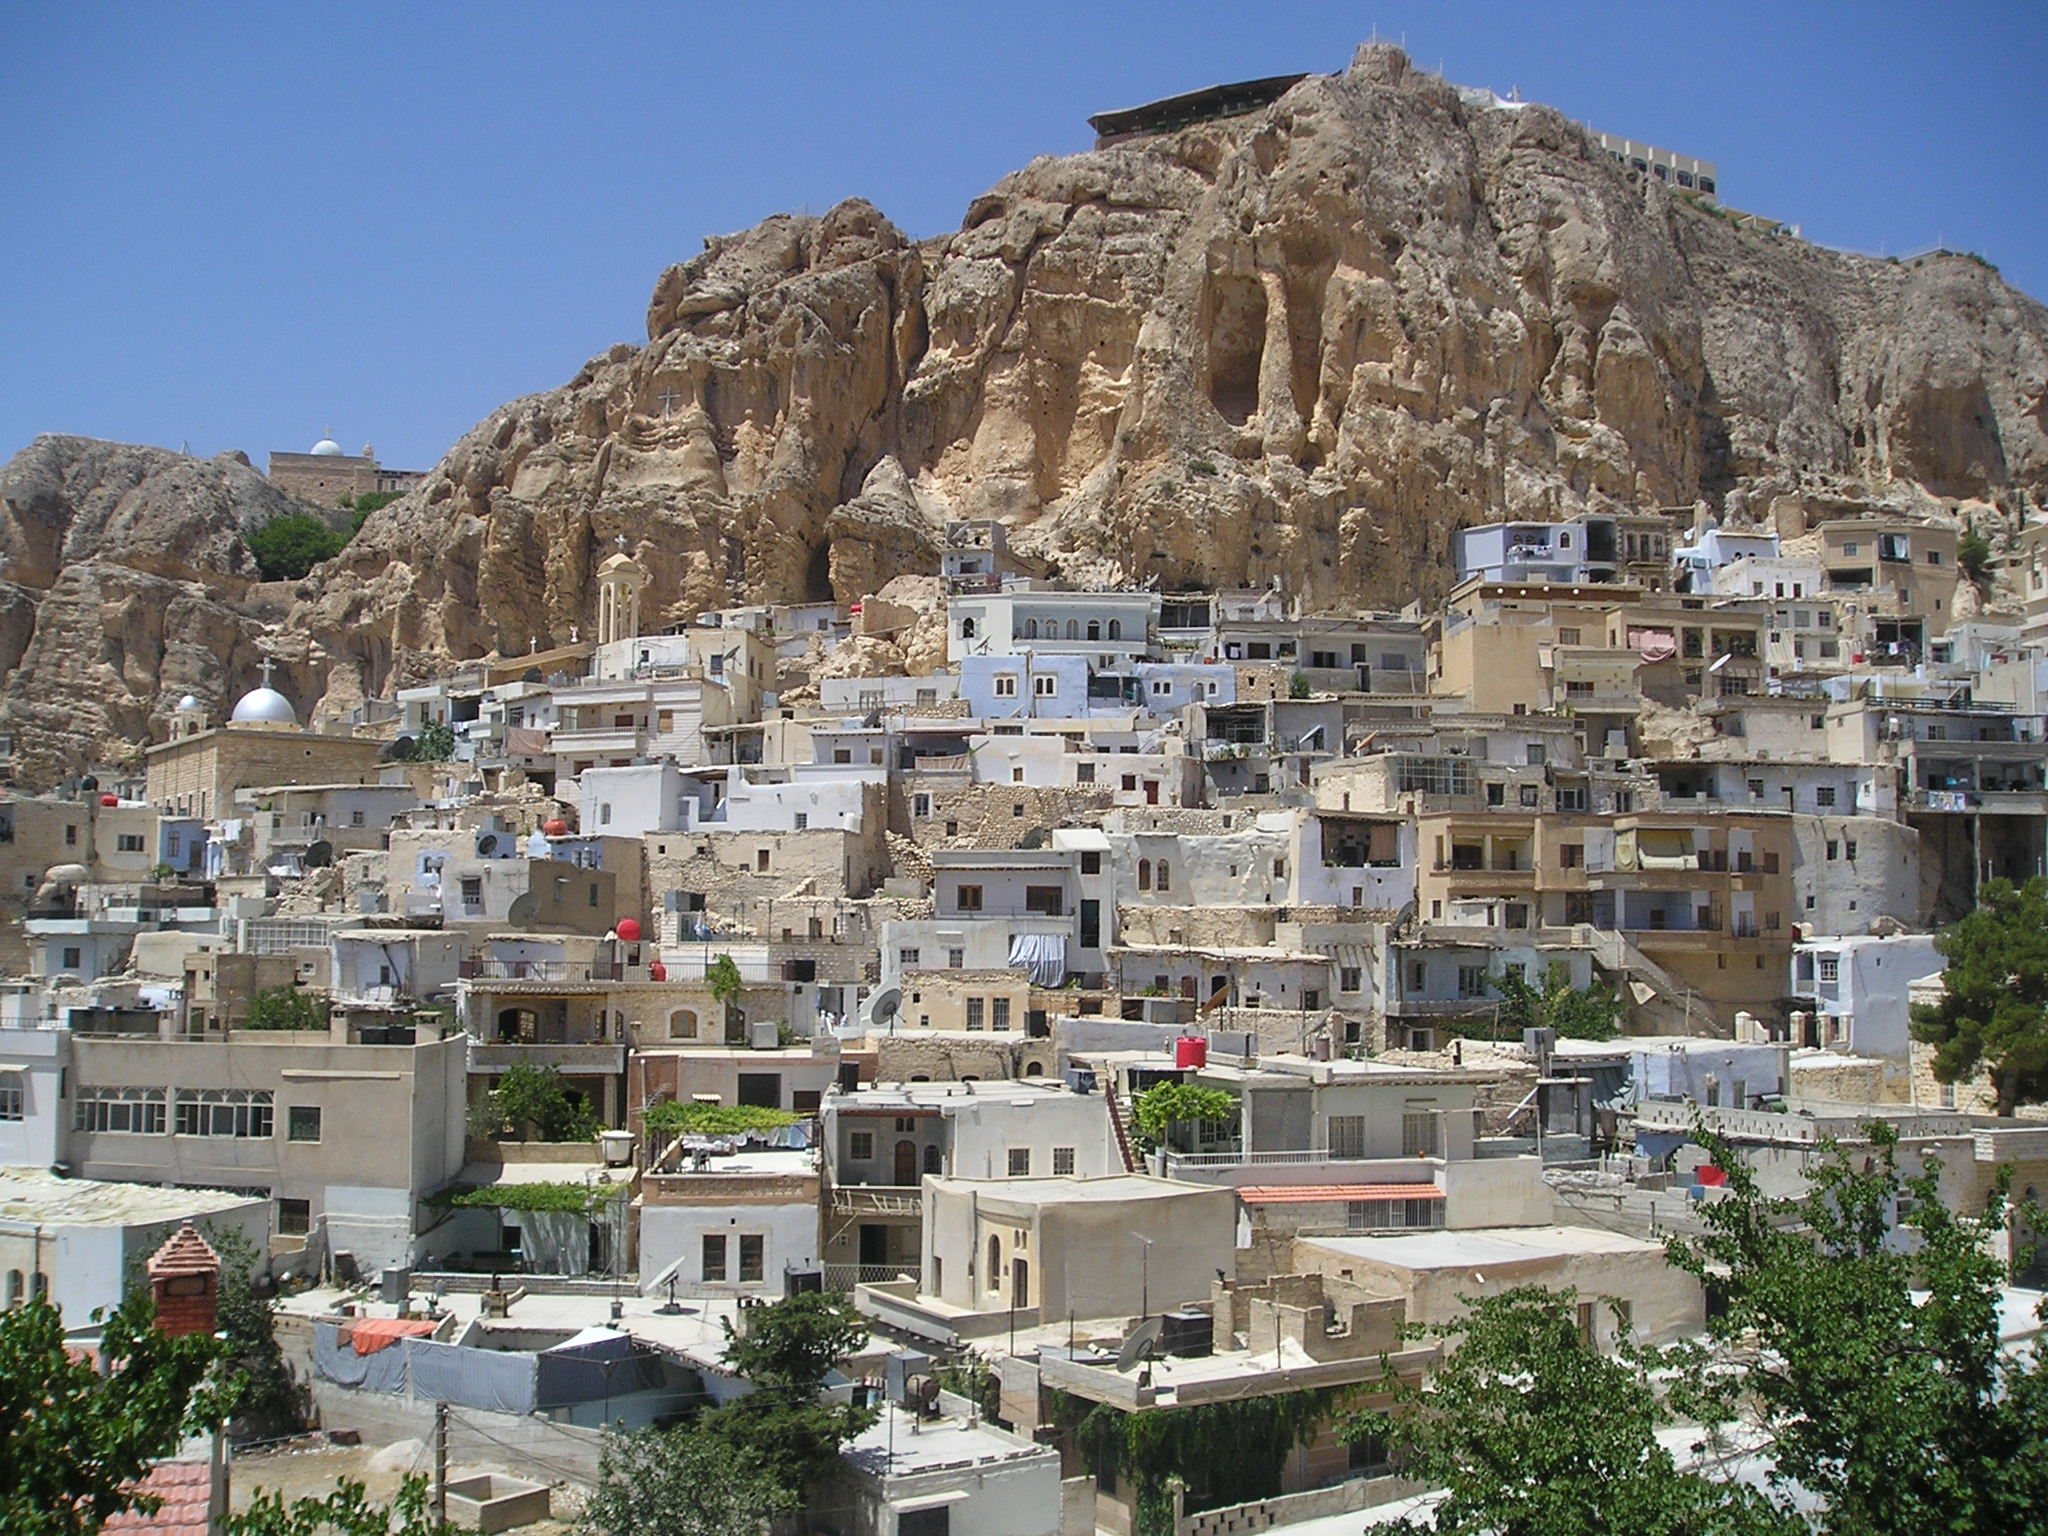 http://upload.wikimedia.org/wikipedia/commons/4/4d/Maaloula-VillageView.jpg